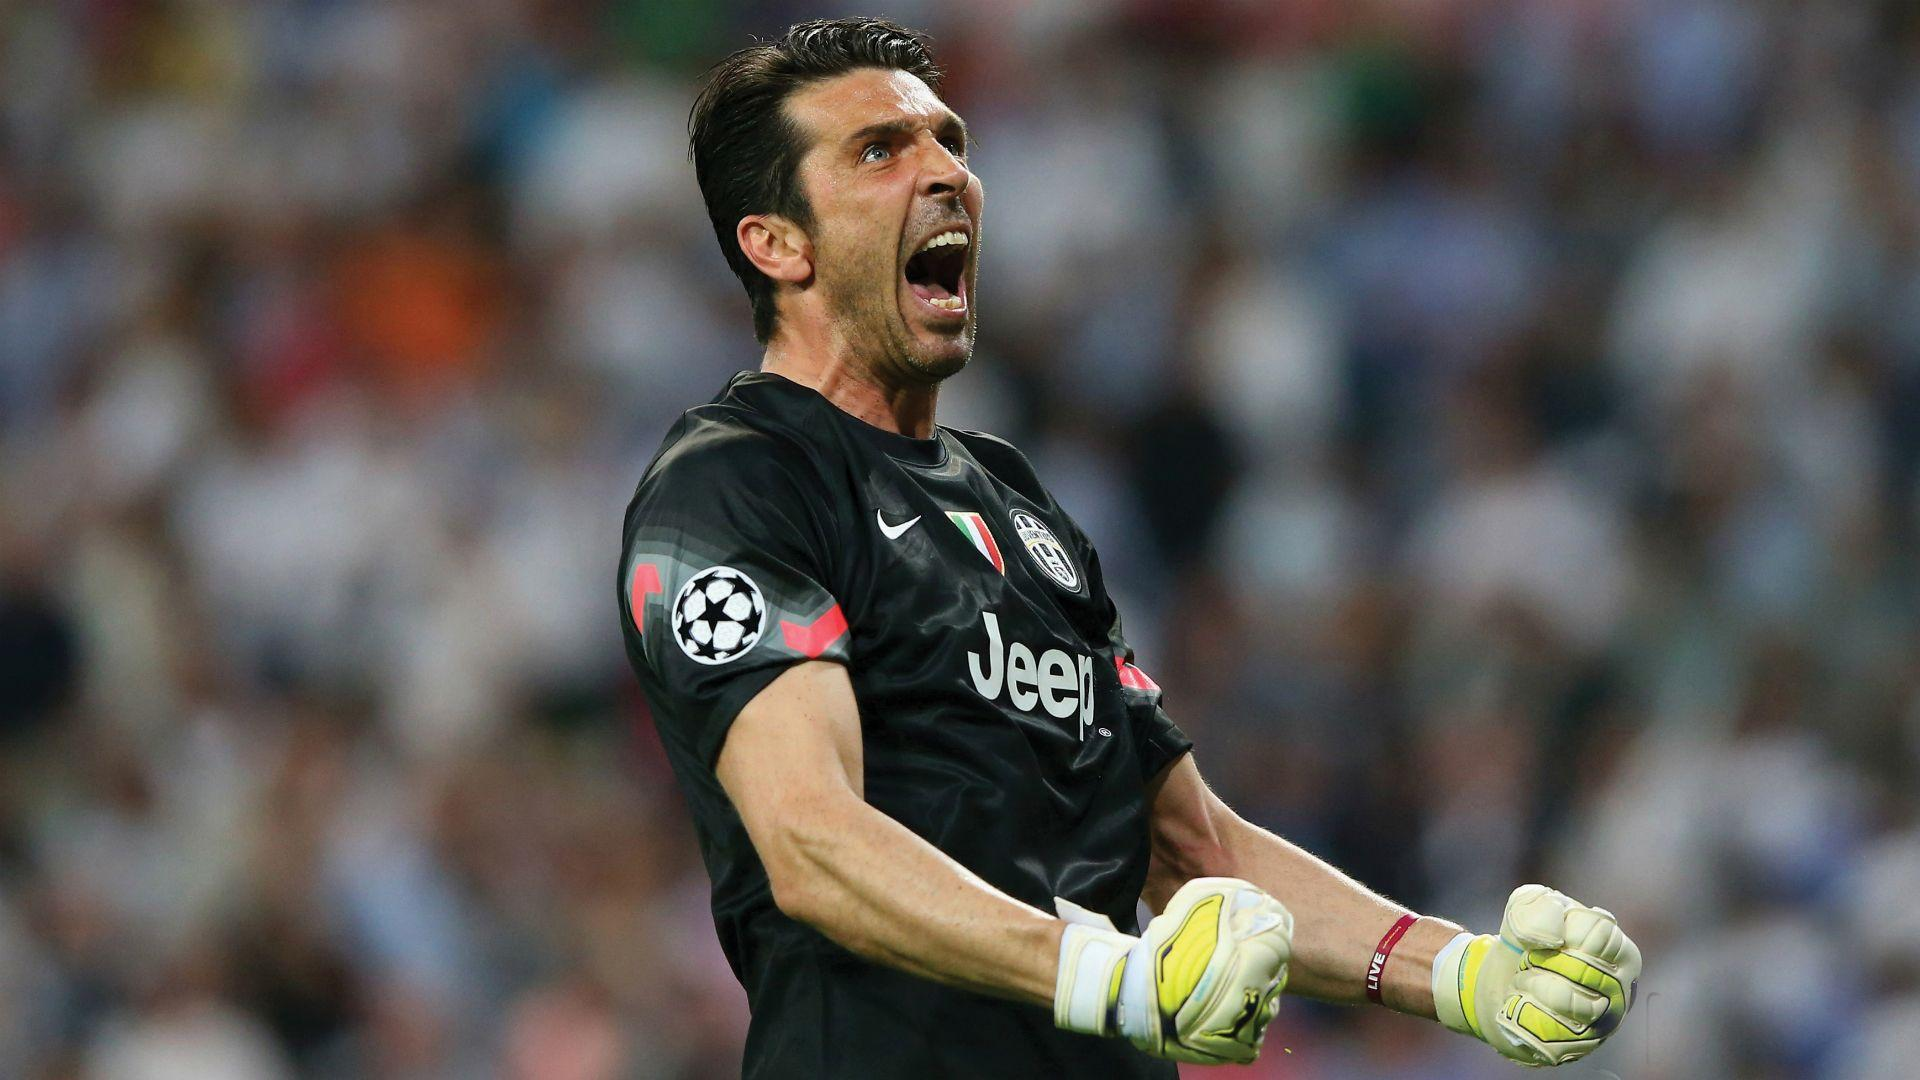 f8d1946396f Gianluigi Buffon HD Wallpapers - New HD Images